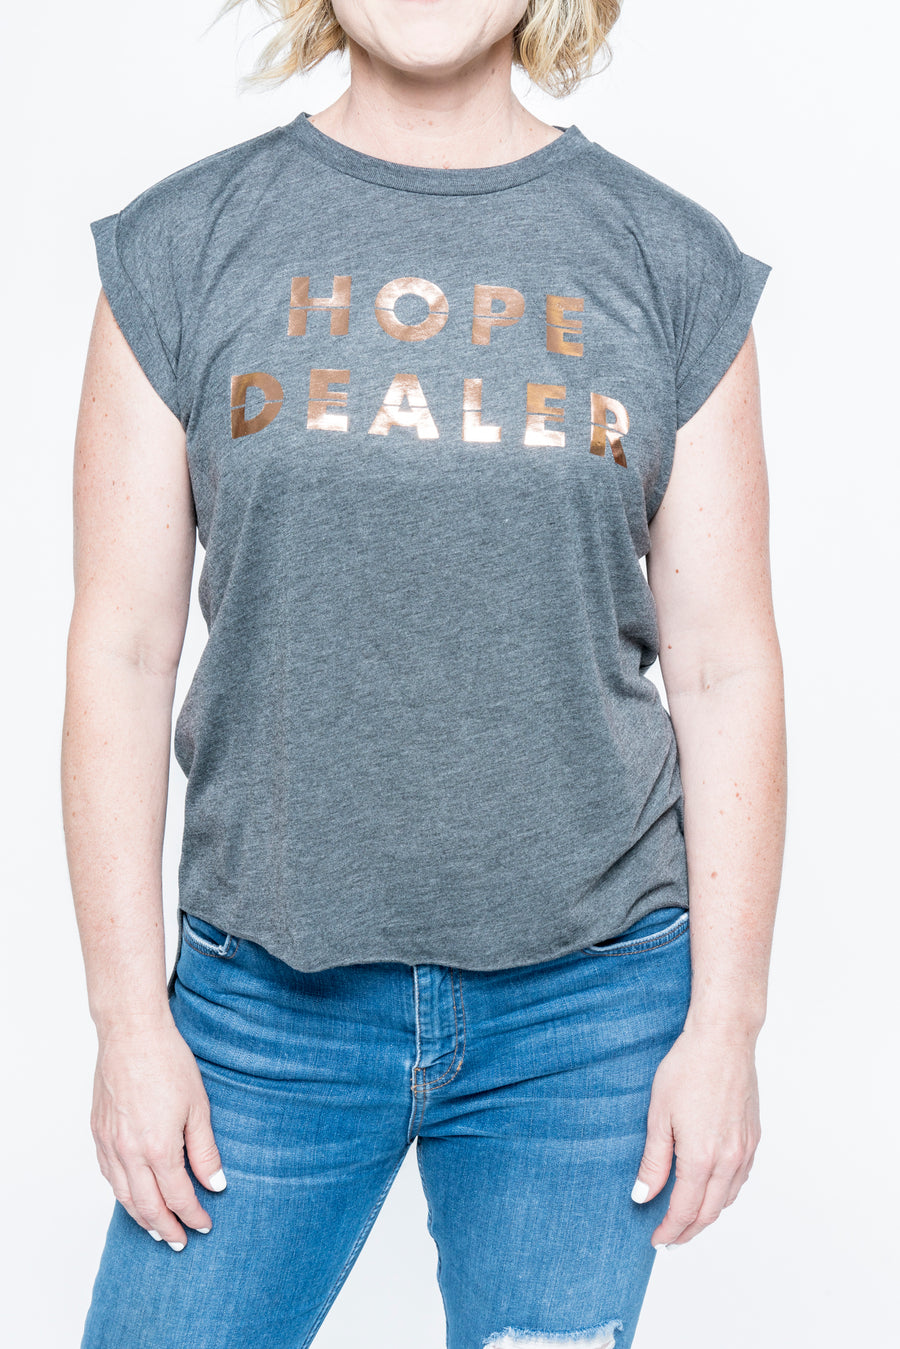 Hope Dealer Sleeveless Top